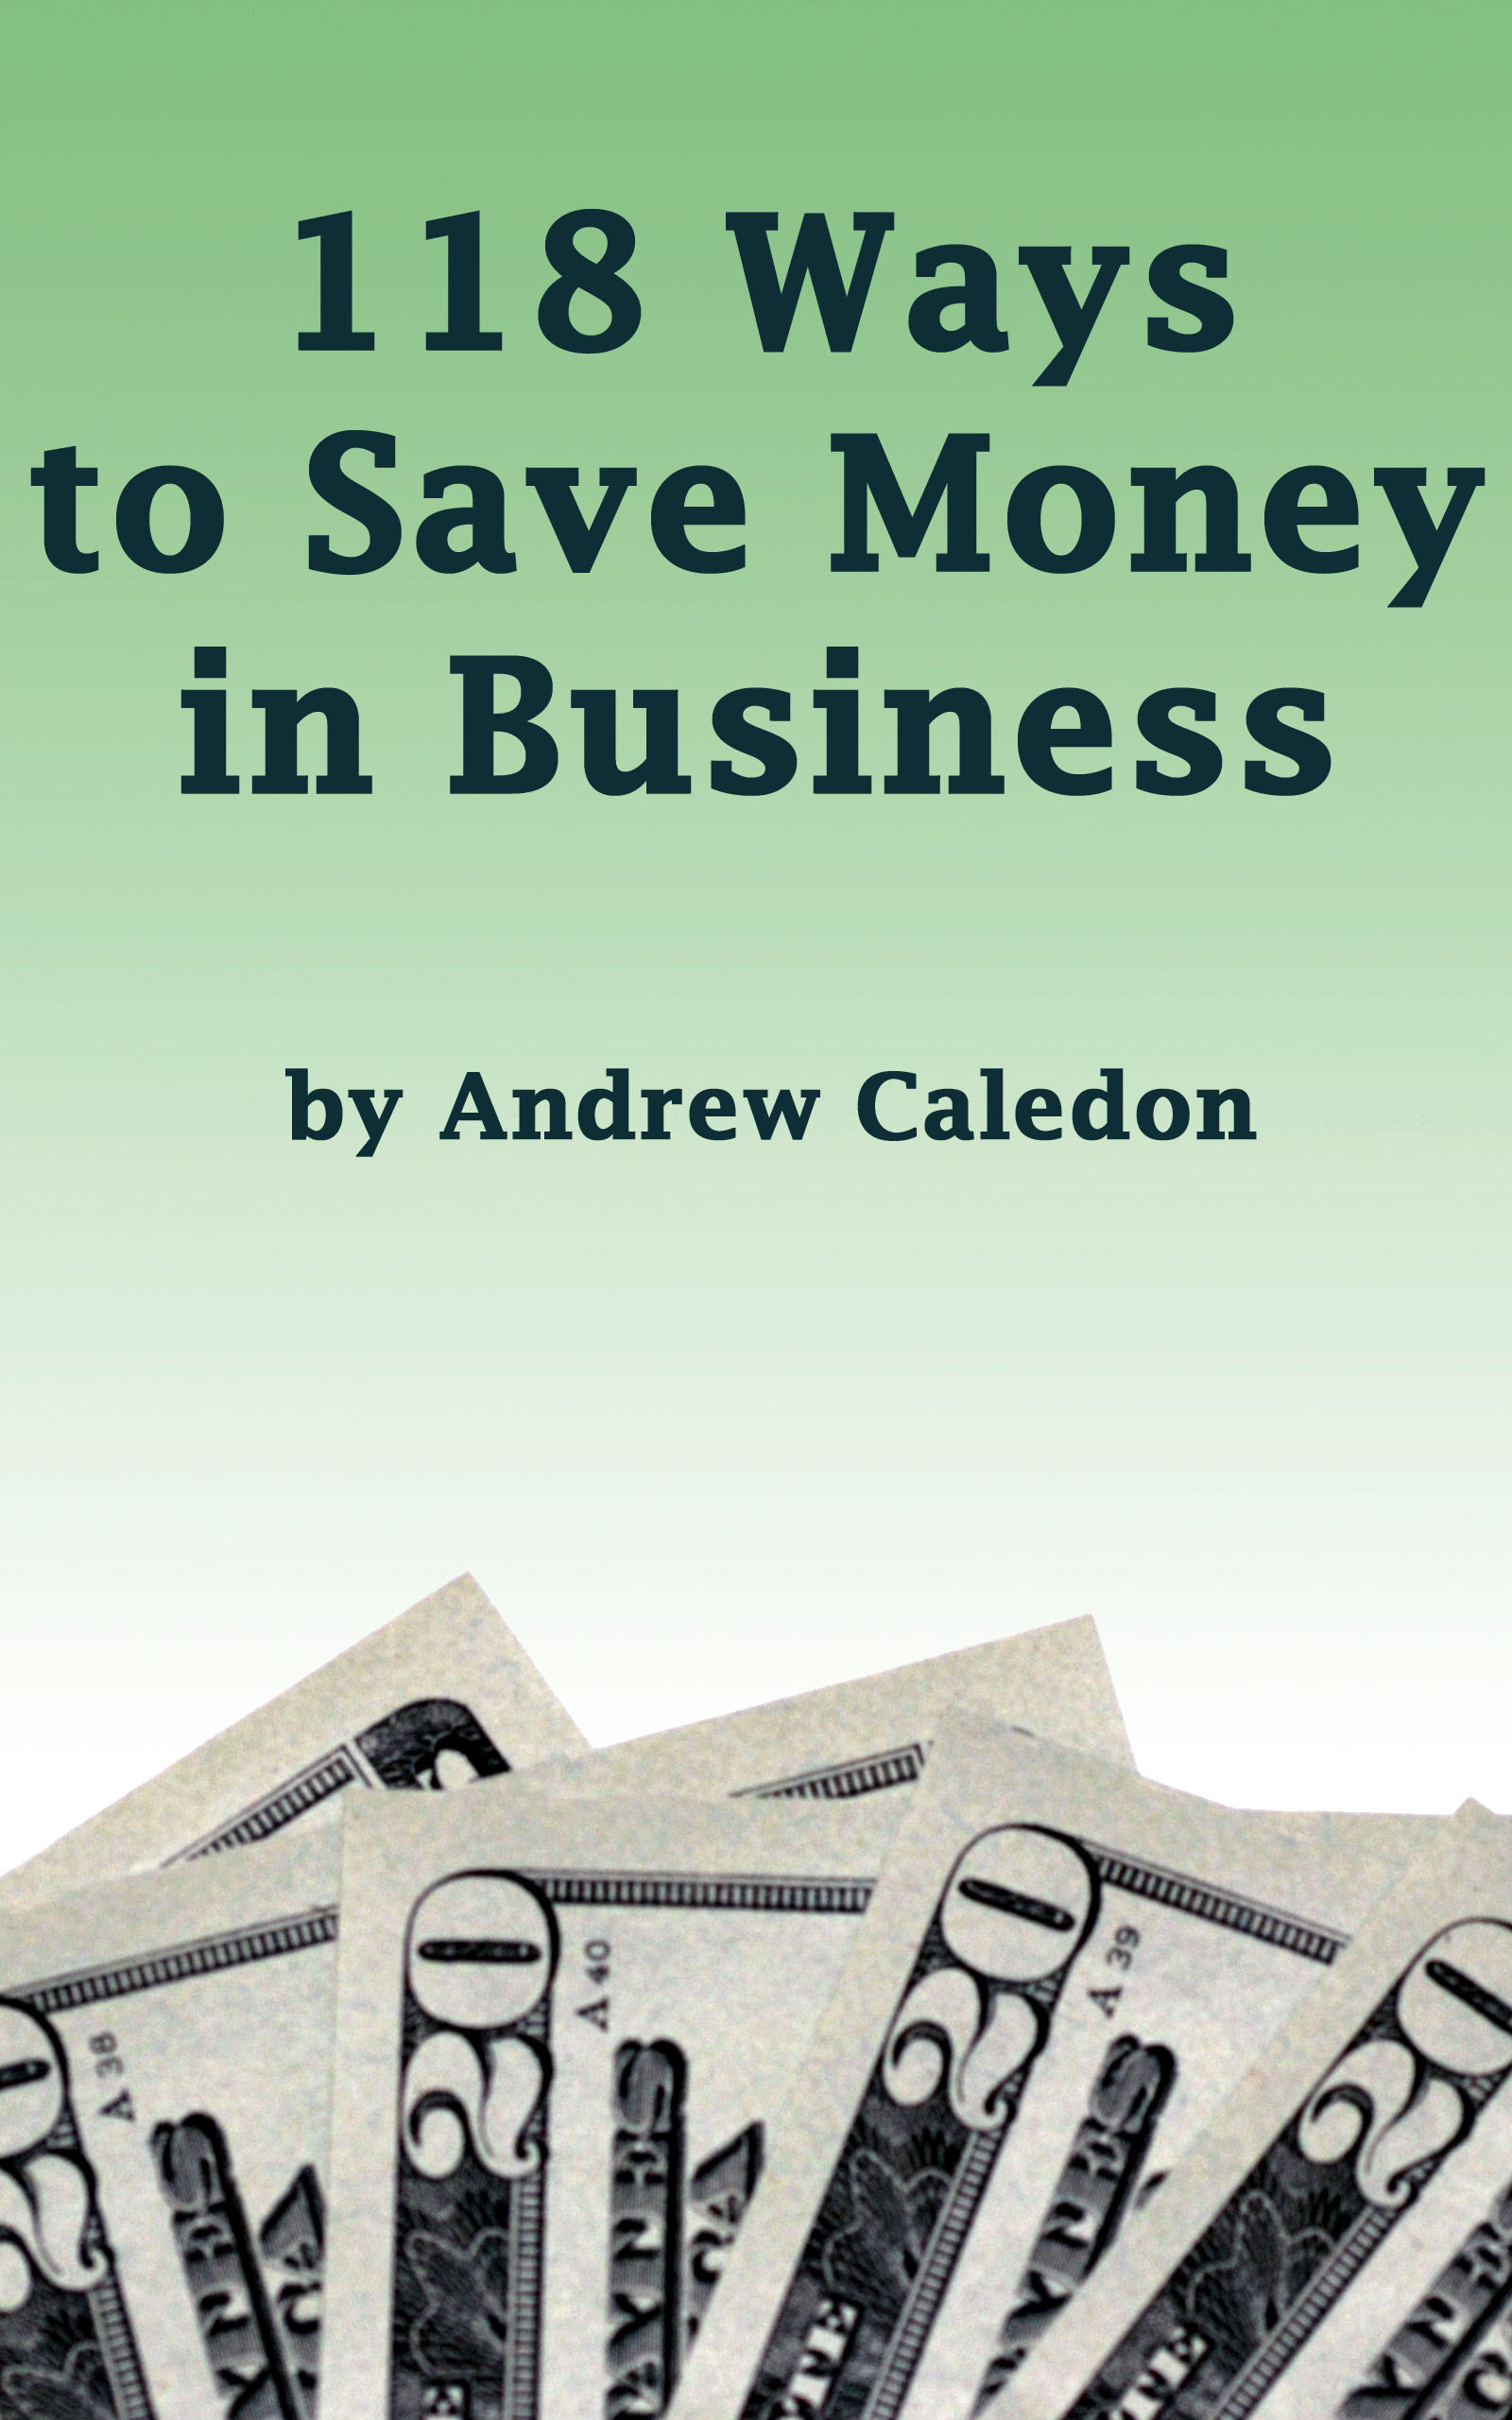 118 Ways to Save Money in Business